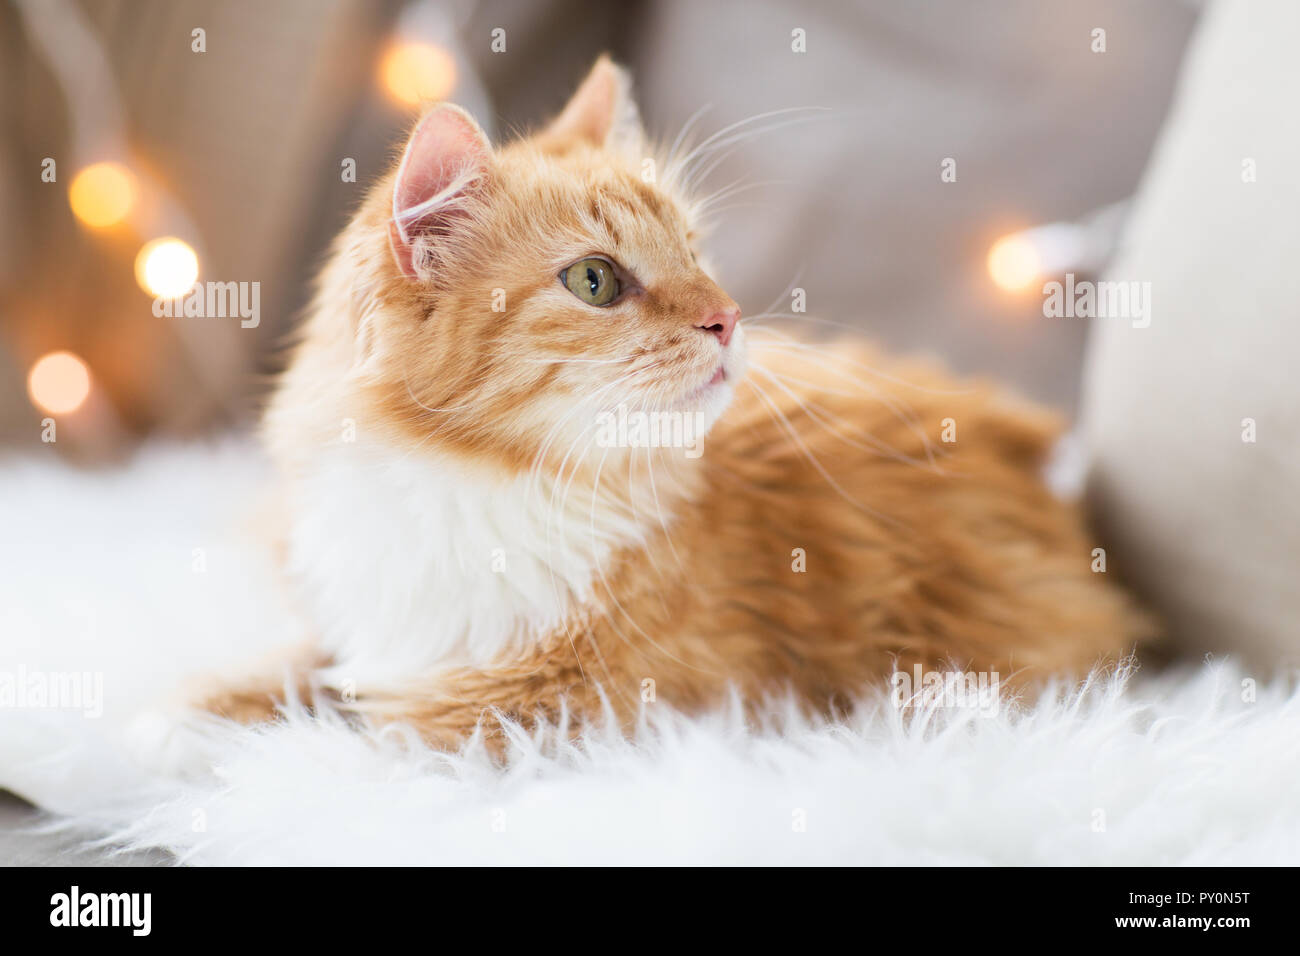 red tabby cat on sofa with sheepskin at home - Stock Image